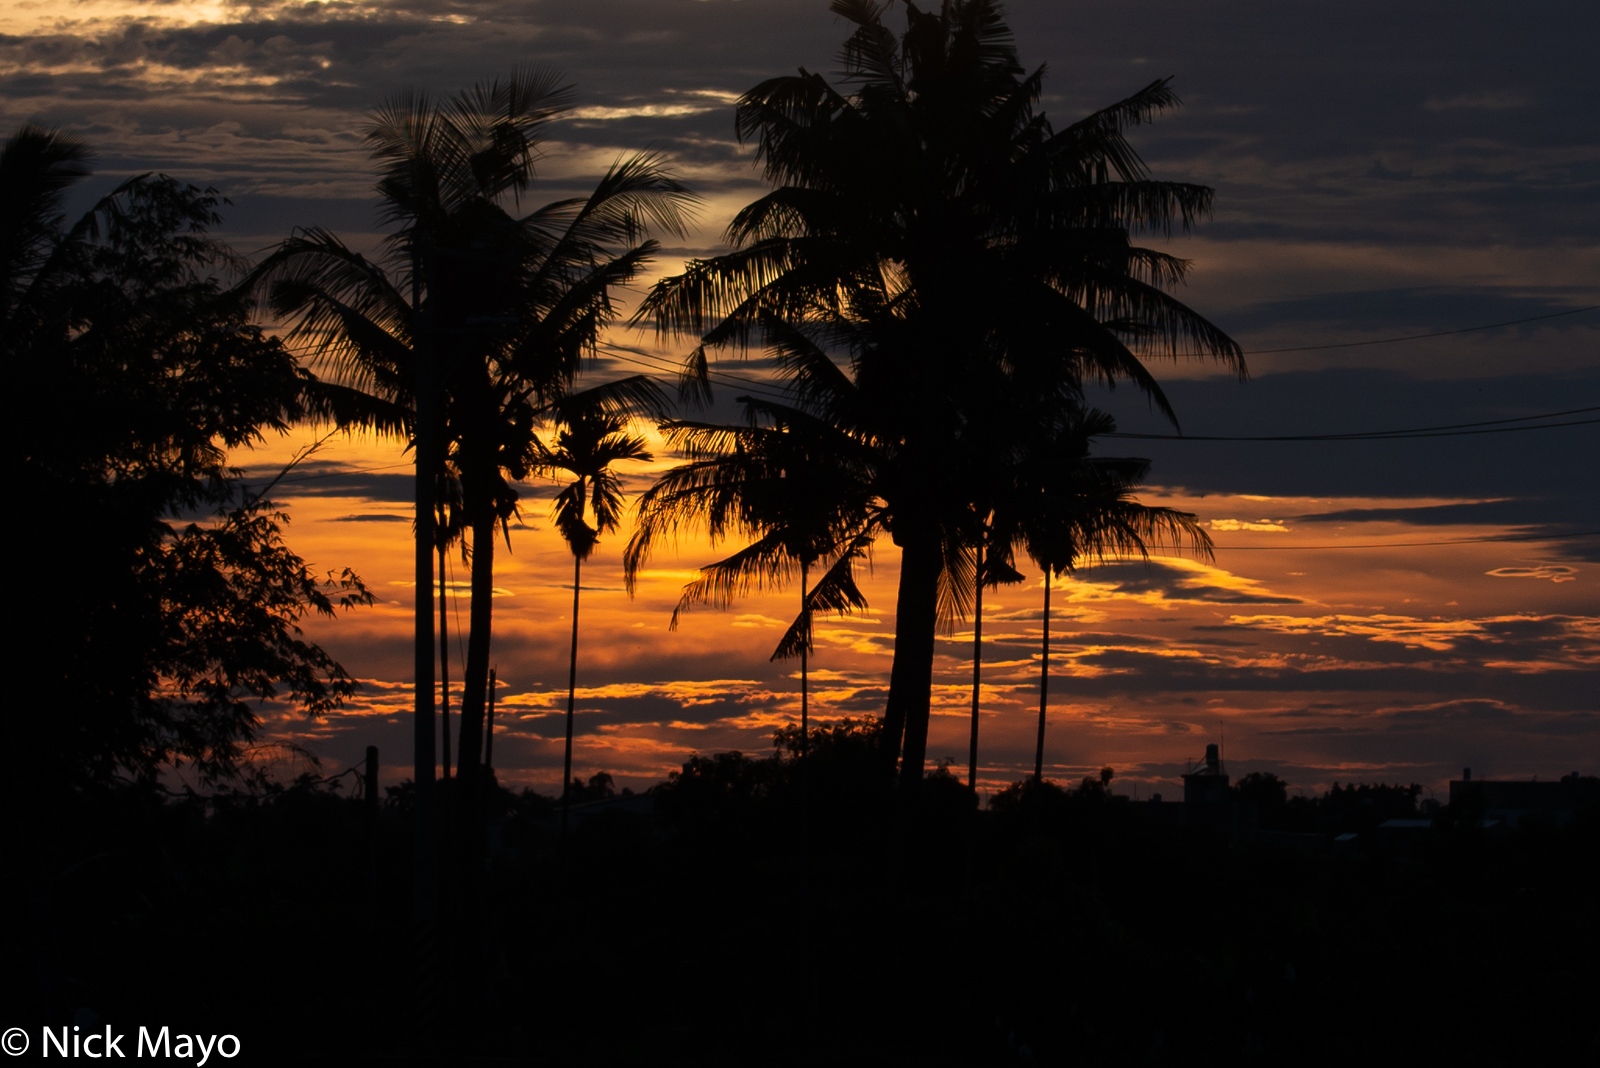 The sunset silhouetting coconut palms on a clear night at Shanzihjiao in Tainan County.